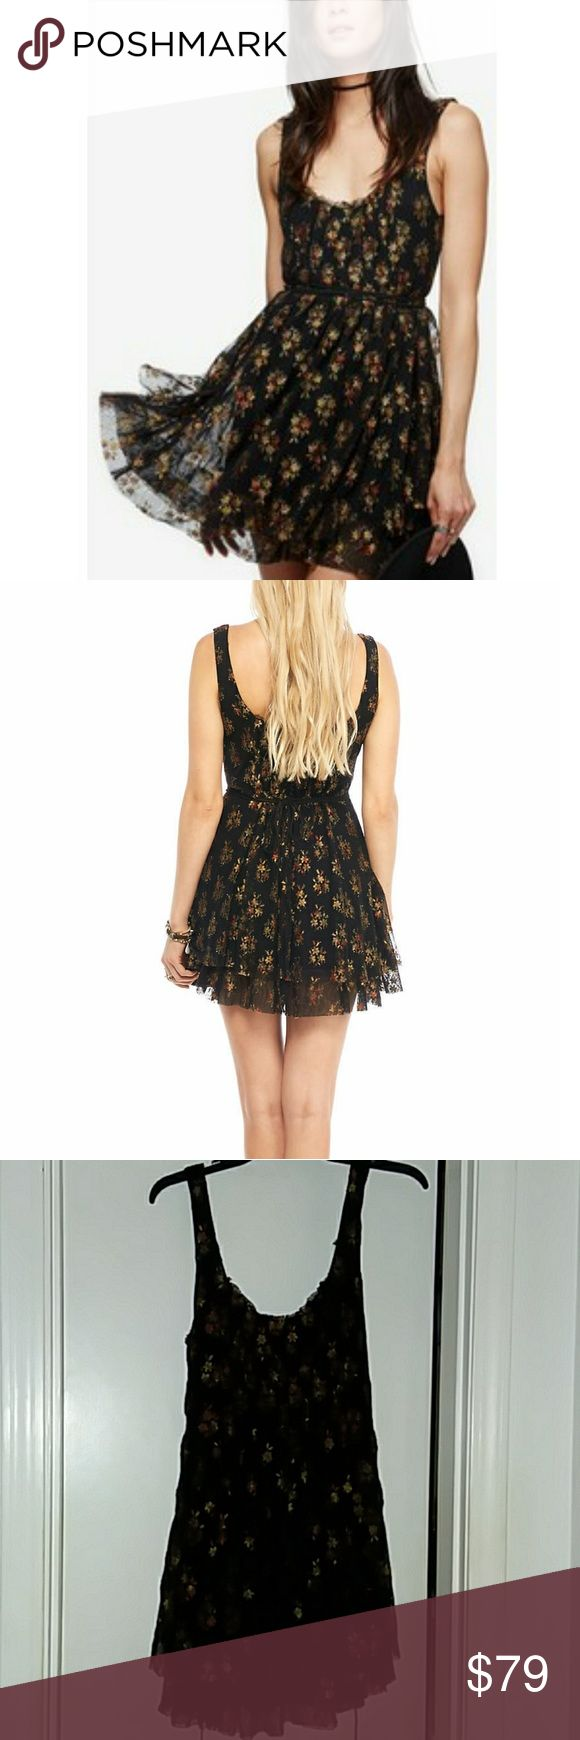 Free People NWT Heart Races Dress Adorable floral-printed mesh tank mini featuring a double-layered skirt, removable waist ties that form  crisscrosses, pleating at the bust, and seven buttons up the back. Raw edge hem. Poly/nylon with rayon liner. Machine washable.  Size medium in Black Combo. Including pics in a lighter color for better detail viewing. Free People Dresses Mini